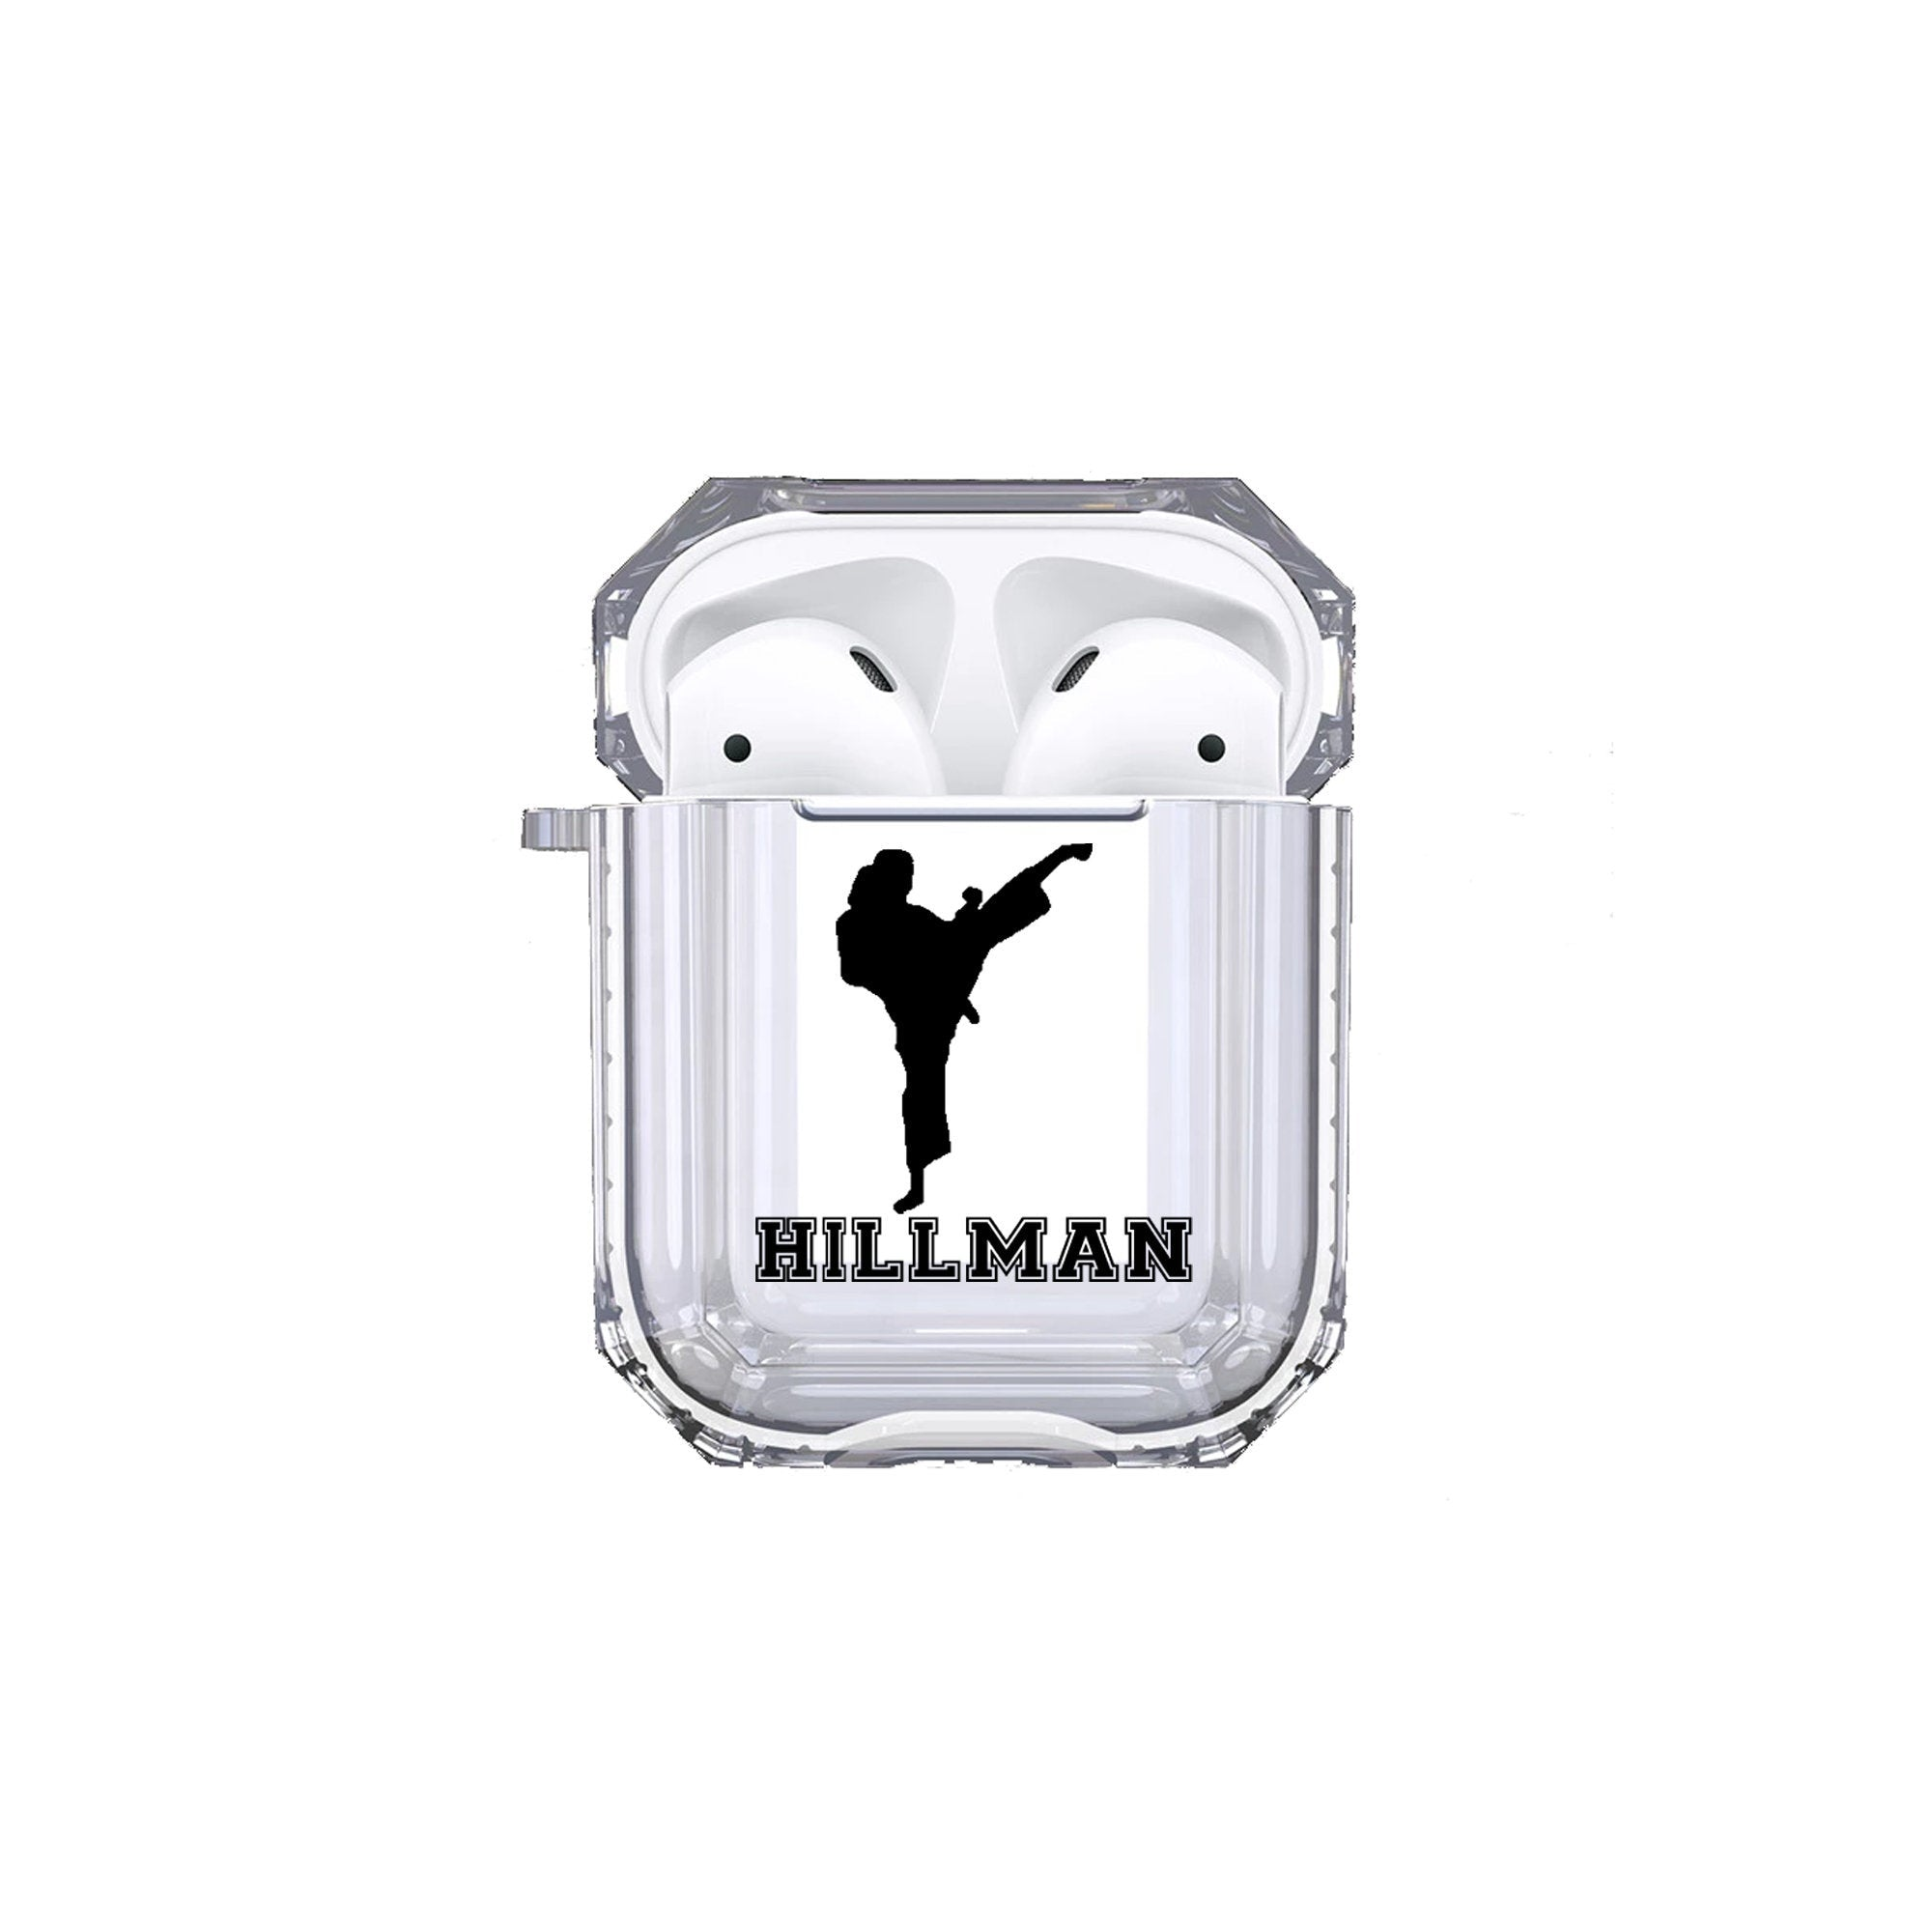 Protective Customized Sports Airpod Case Karate Name Airpods Case Personalized Gift for Karate Kid Martial Art Tae Kwon Do Coach Mom Dad Fan